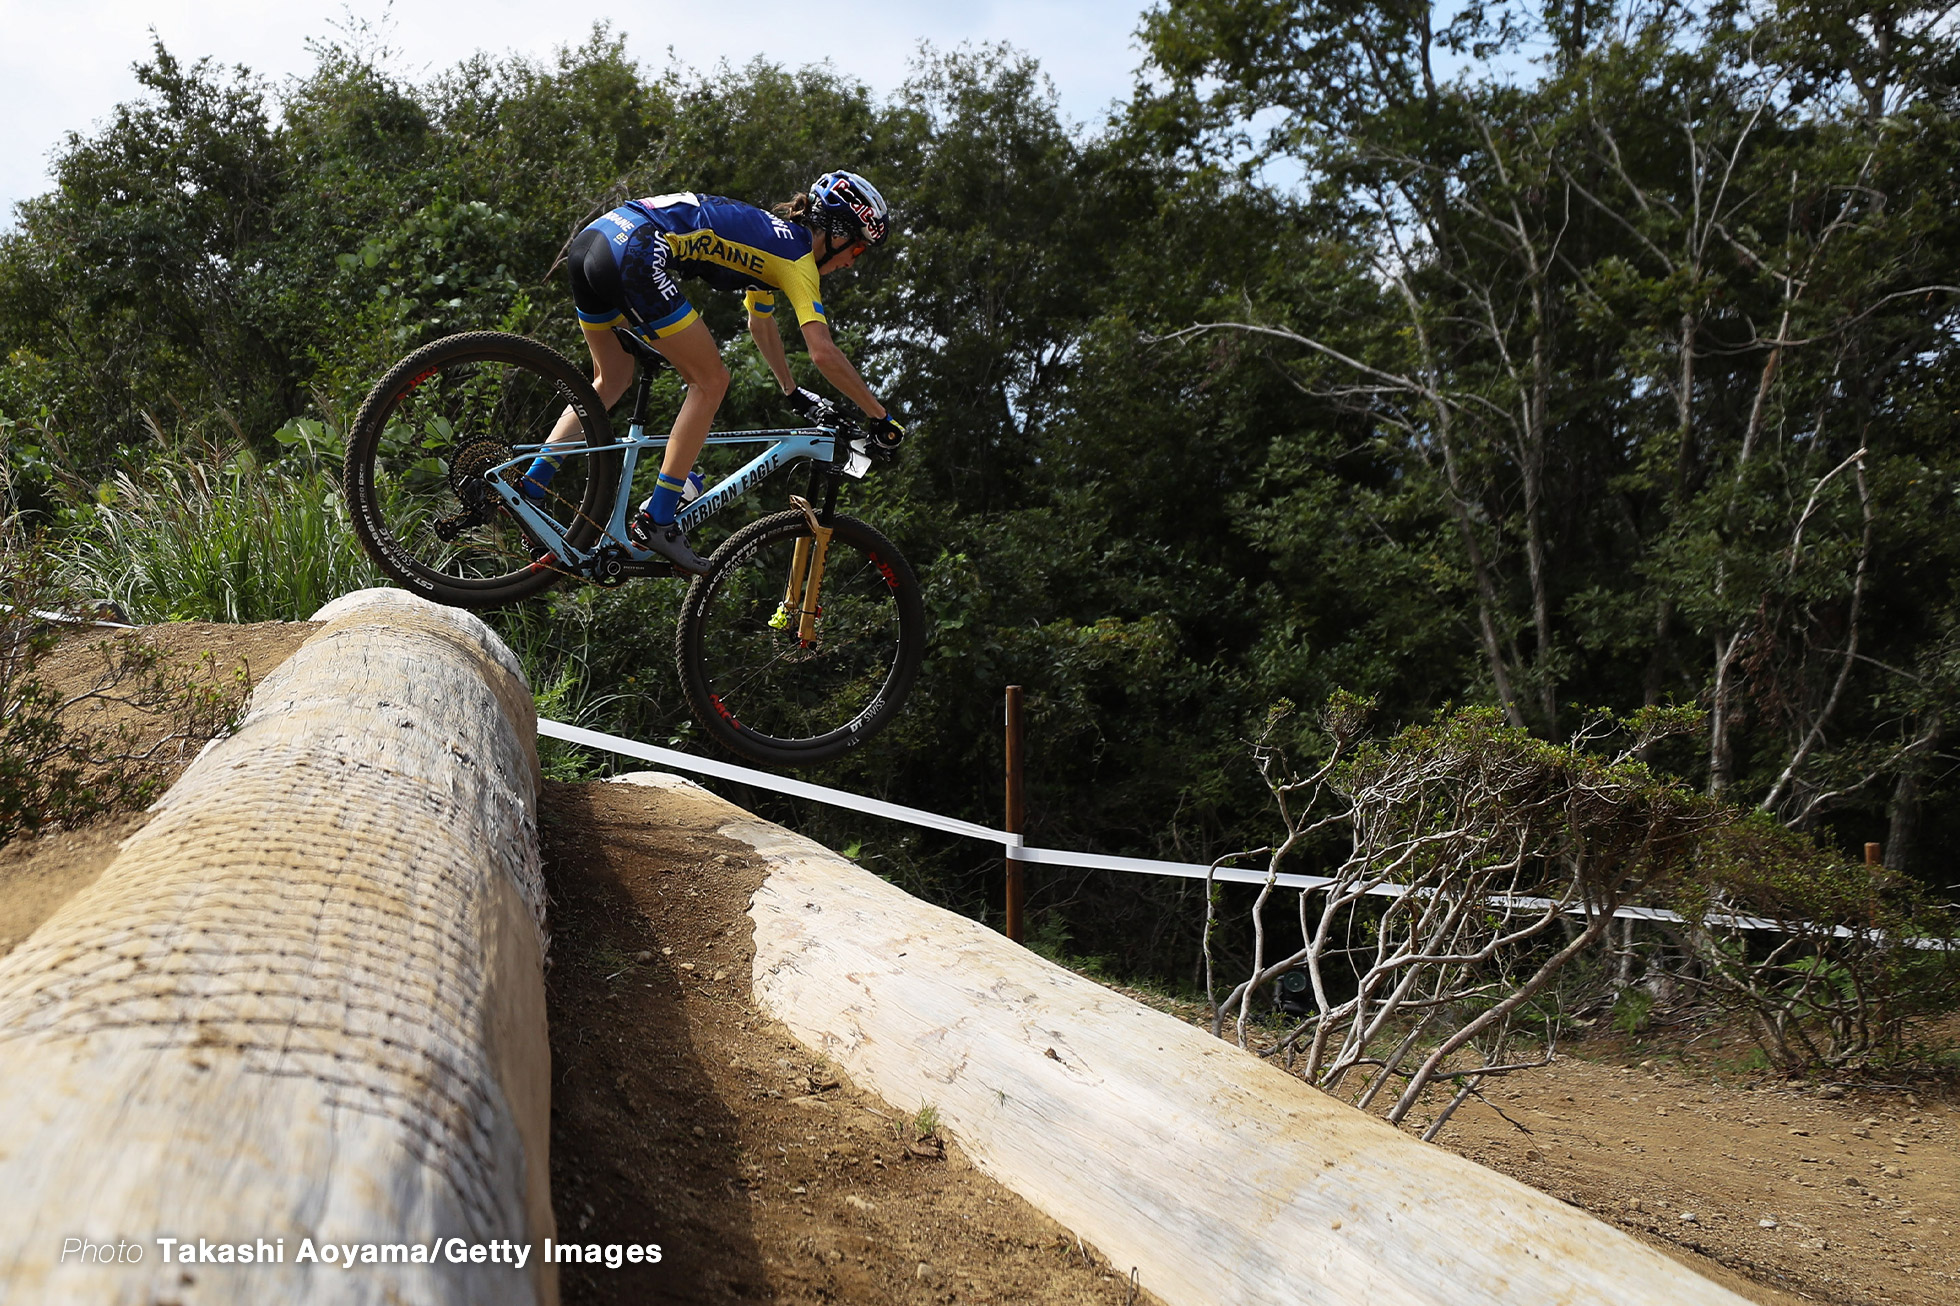 IZU, JAPAN - OCTOBER 06: Yana Belomoina of Ukraine competes in Women's race during the Cycling - Mountain Bike Tokyo 2020 Test Event on October 06, 2019 in Izu, Shizuoka, Japan. (Photo by Takashi Aoyama/Getty Images)